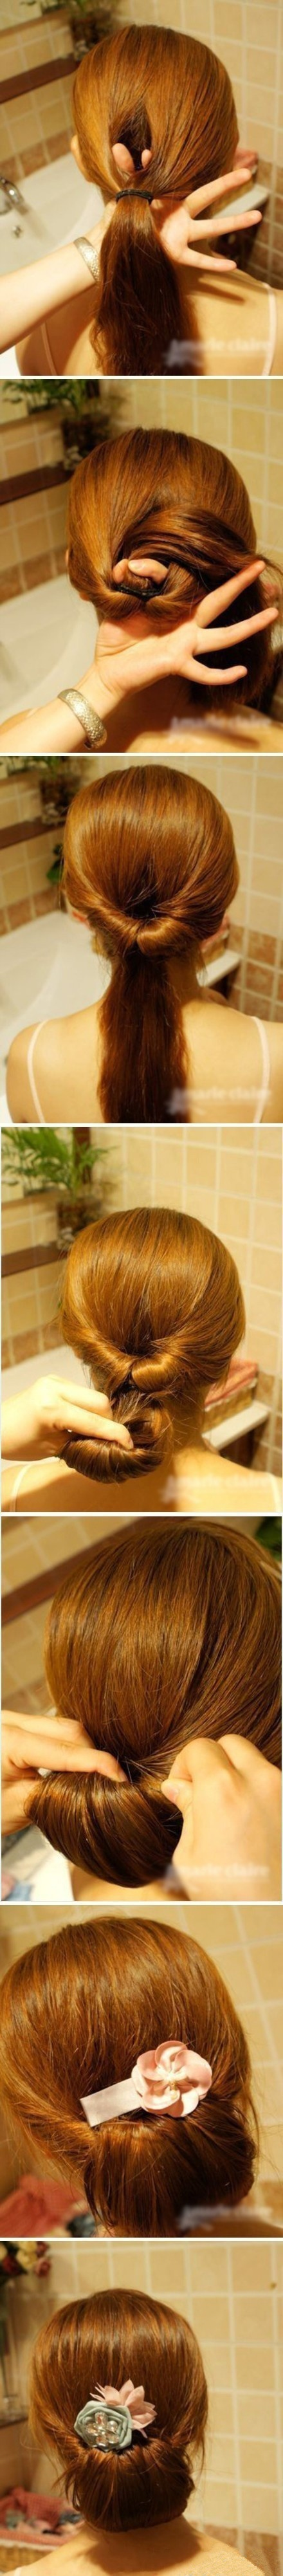 Hairstyle Tutorials (11)